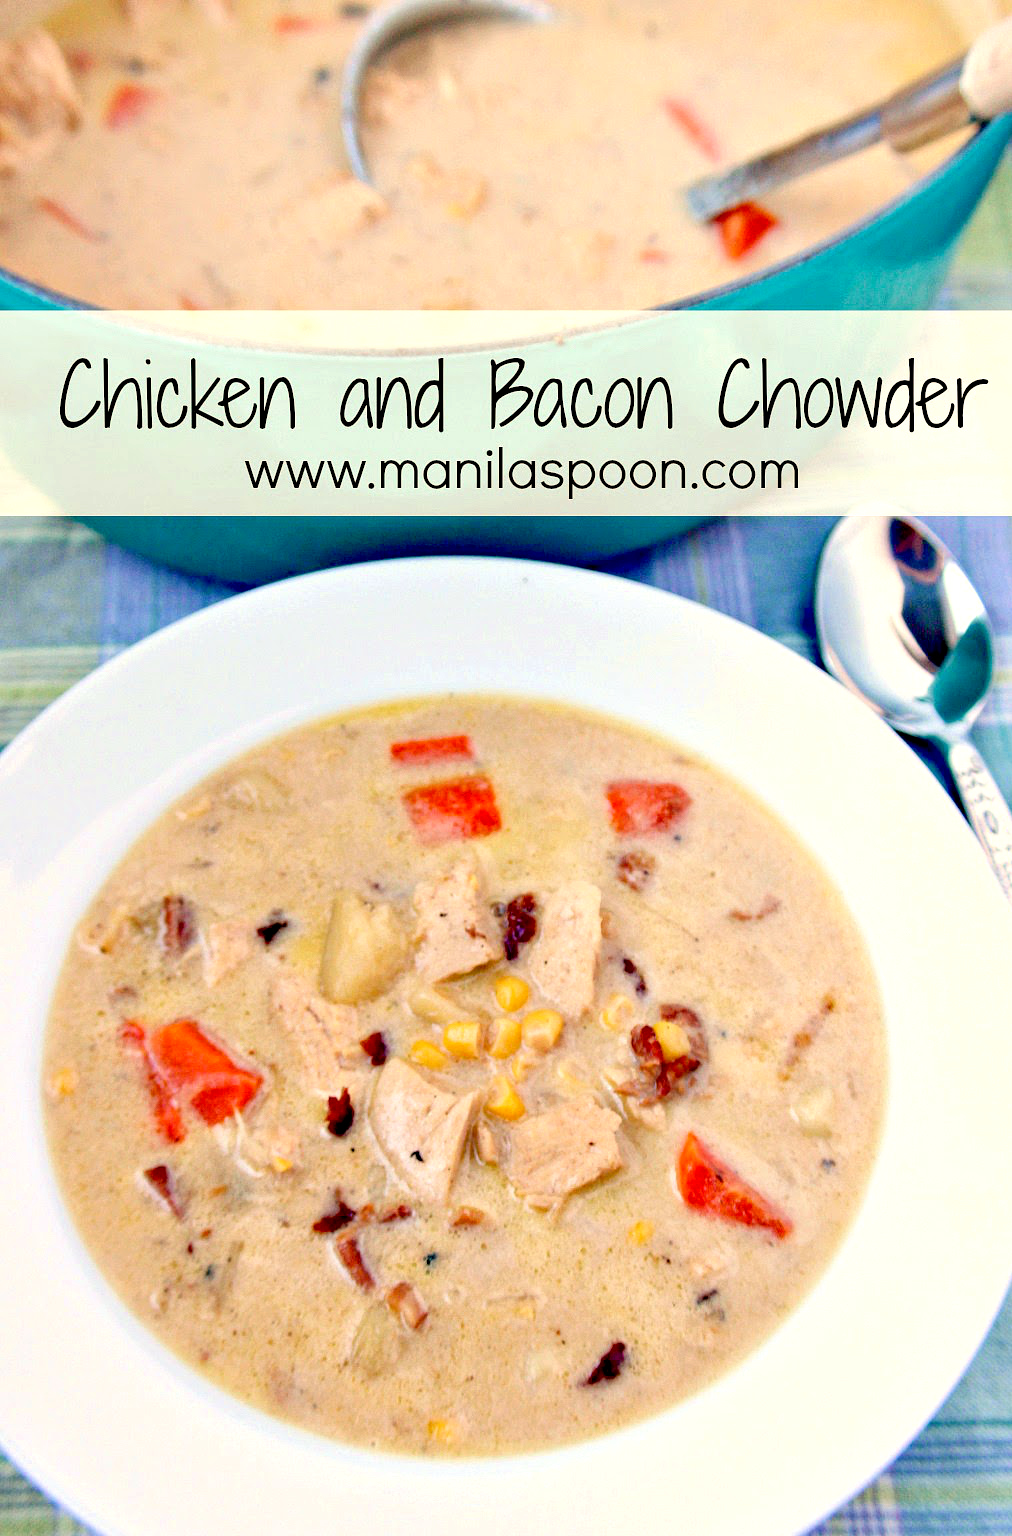 Chicken and Bacon Chowder